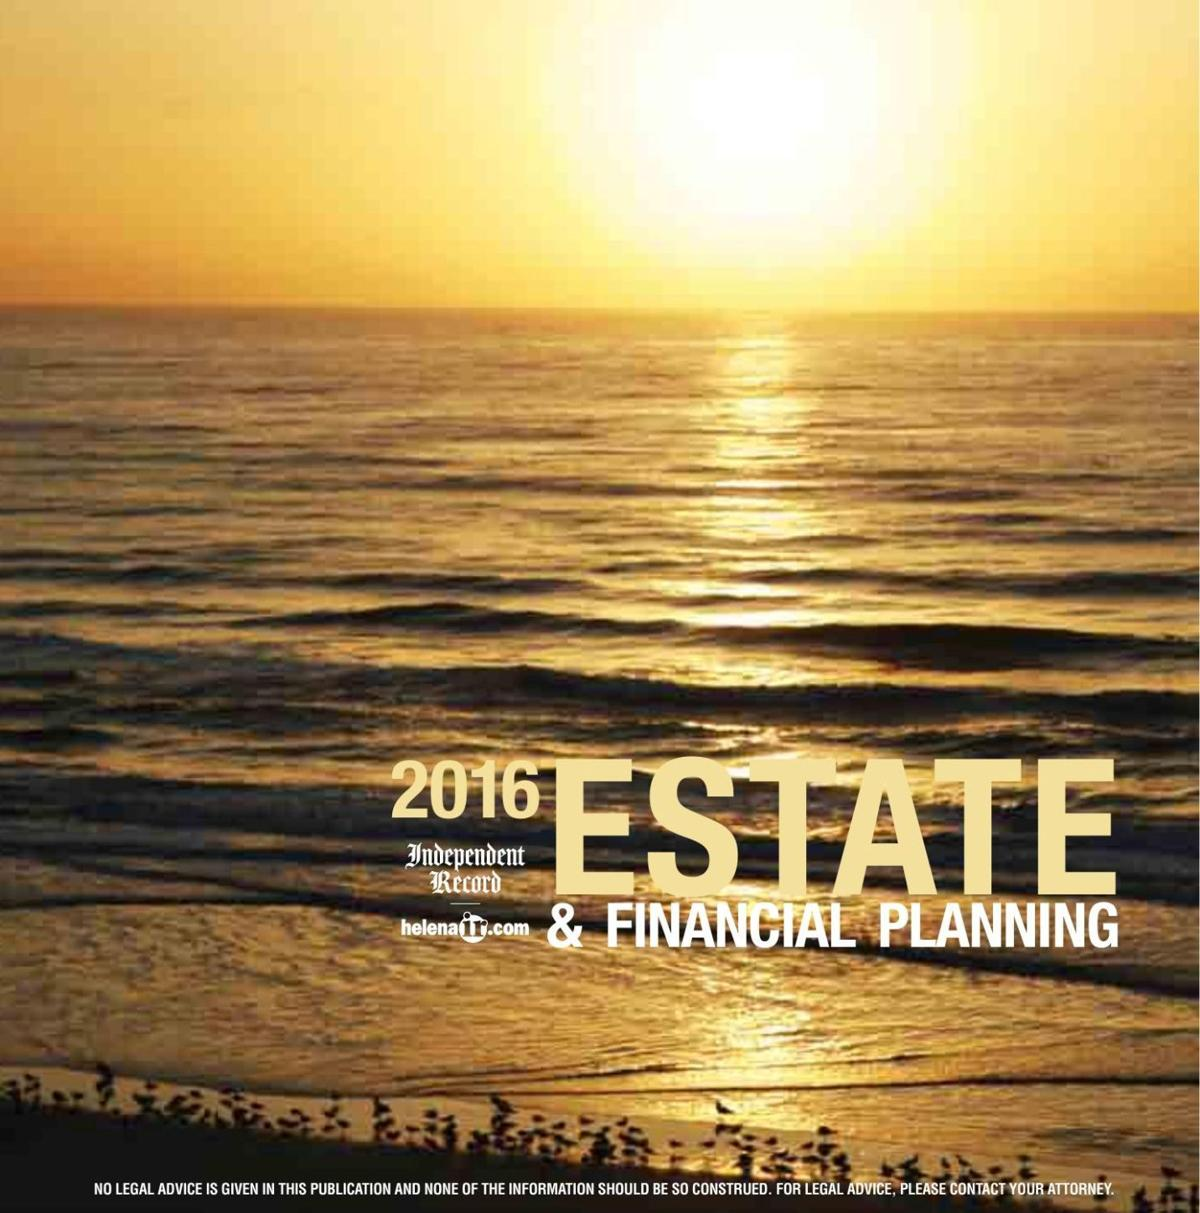 The Estate and Financial Planning Guide